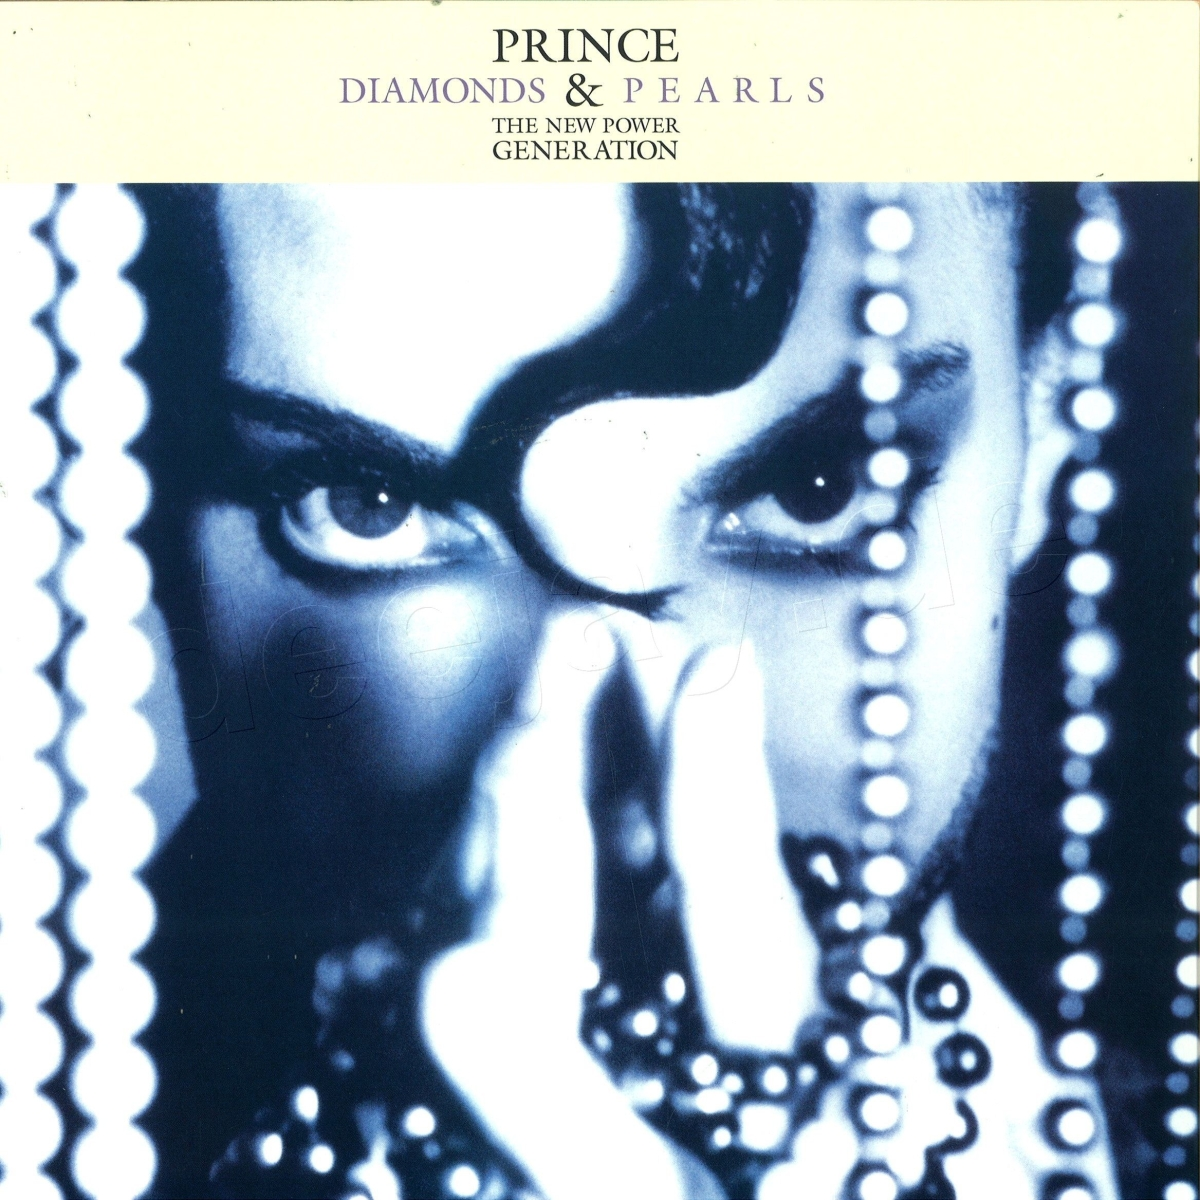 「prince diamonds and pearls」の画像検索結果